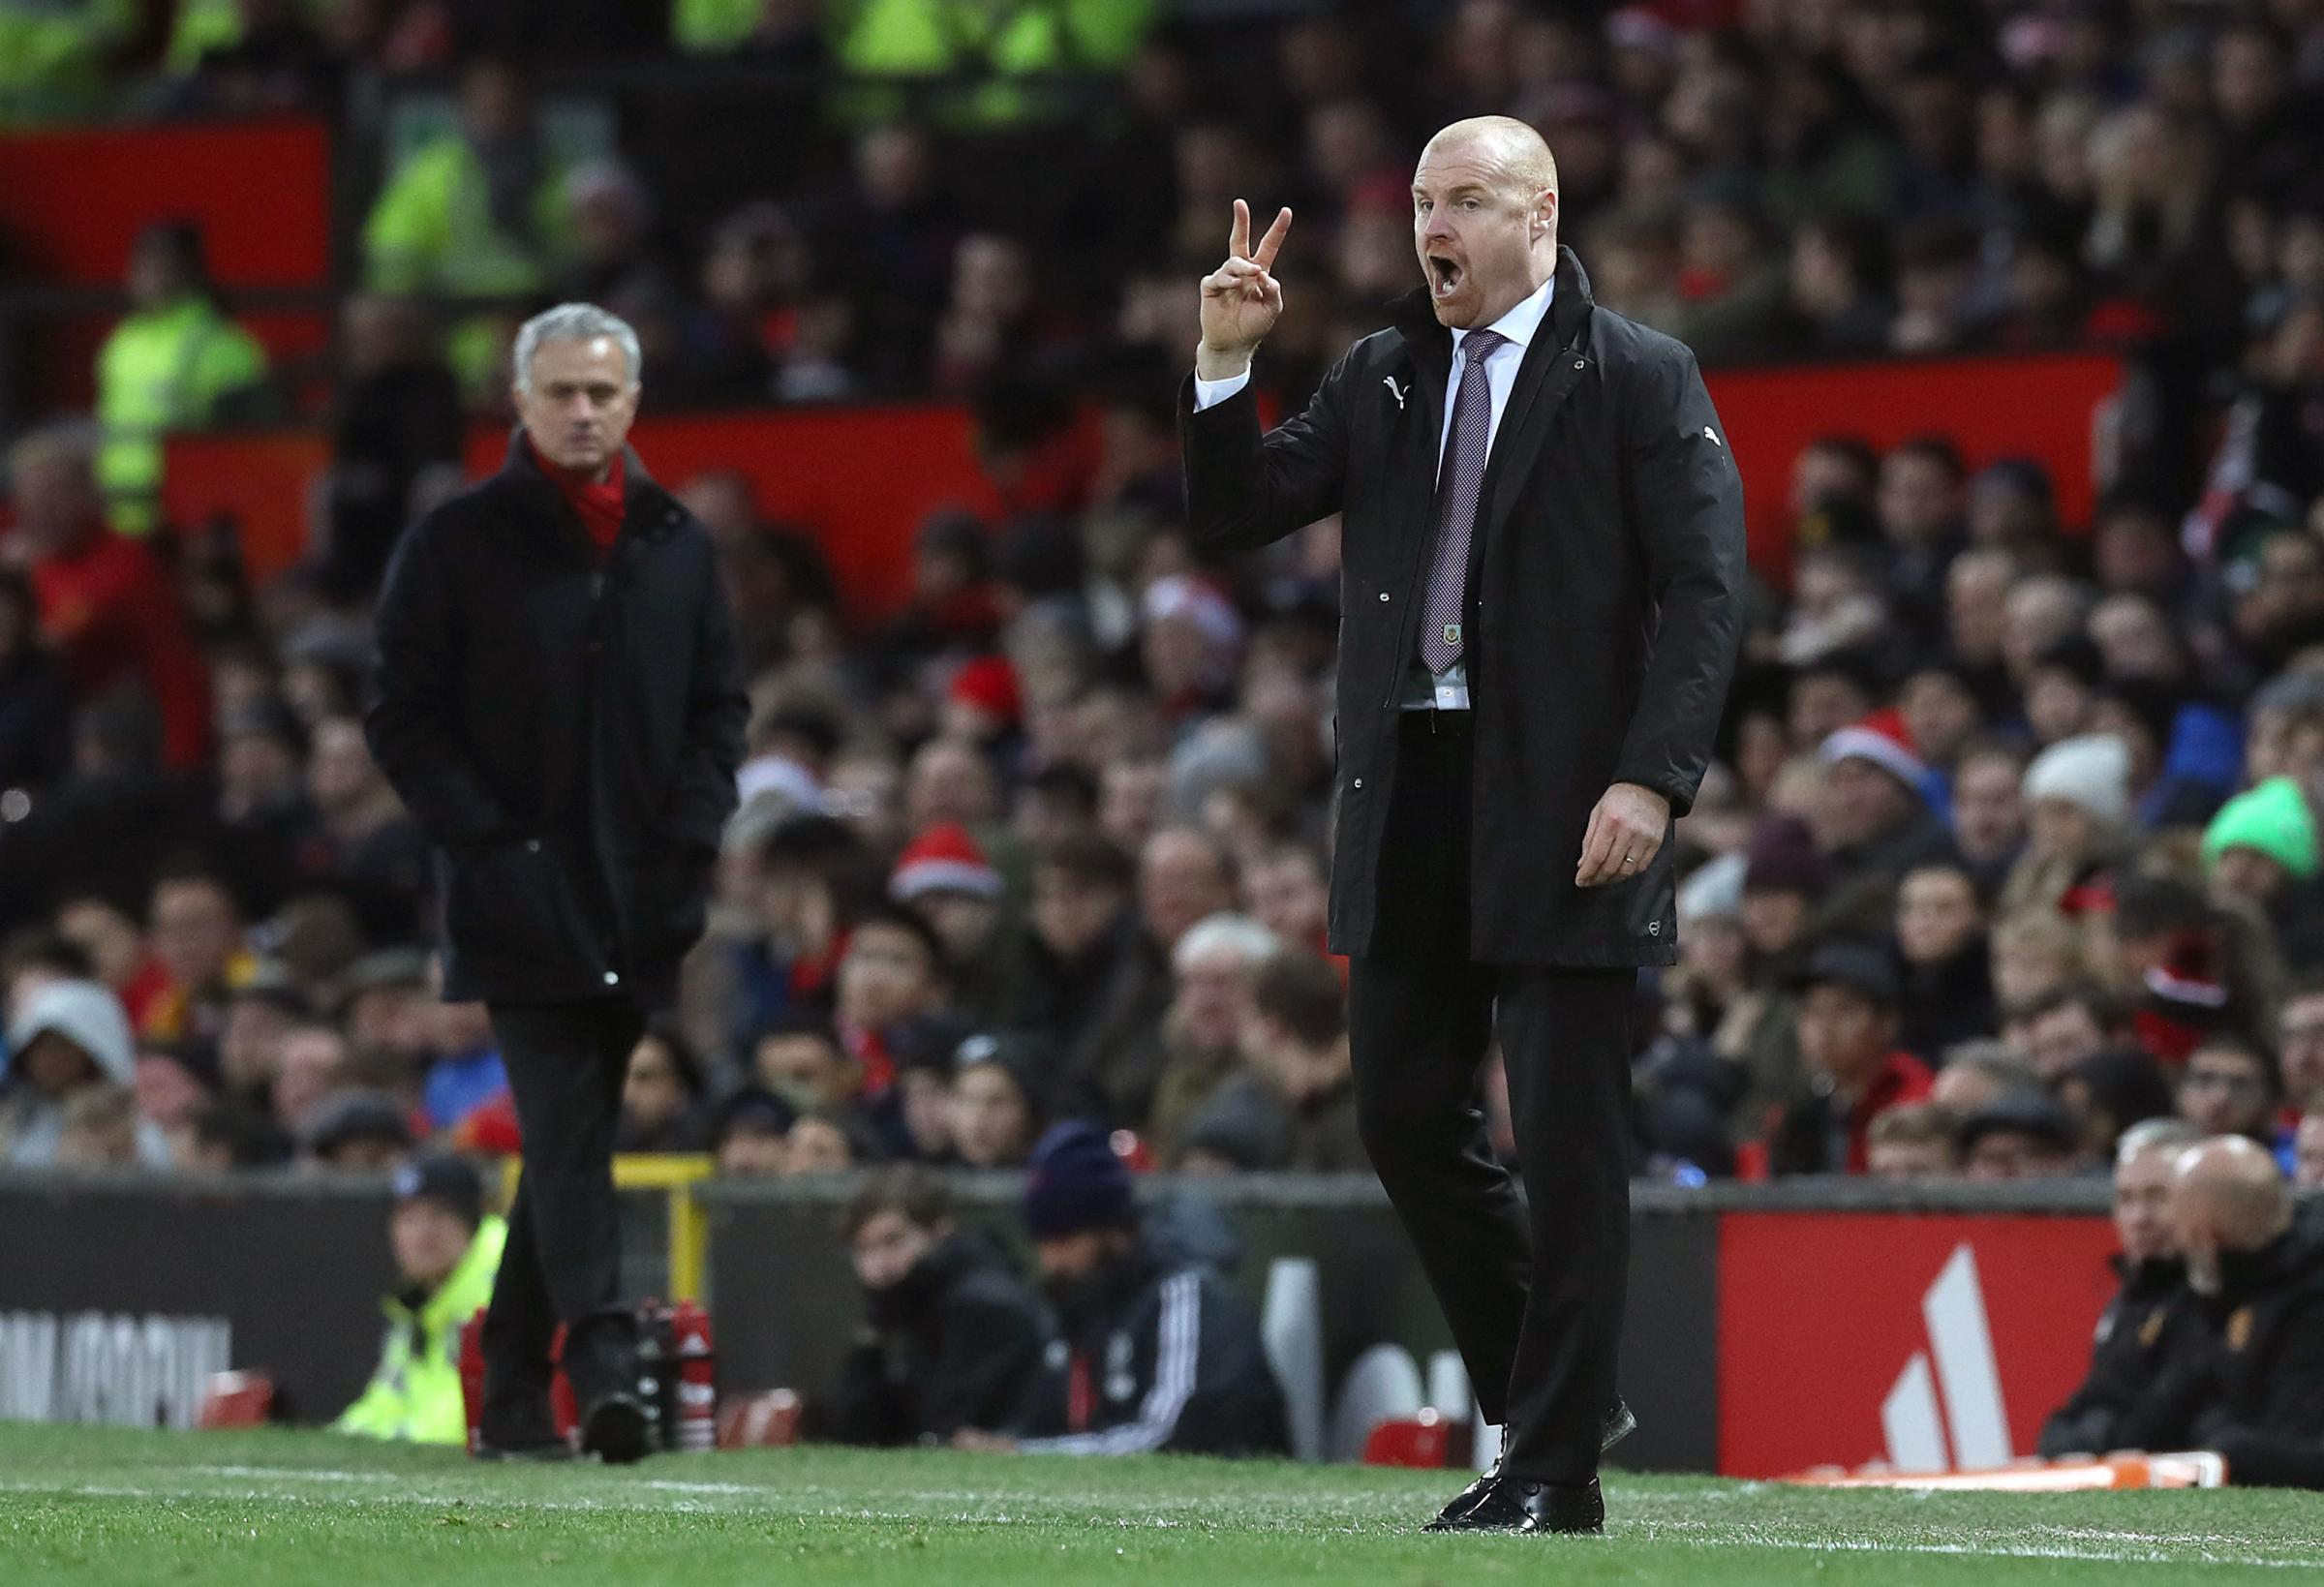 Sean Dyche has enjoyed some success against the likes of Jose Mourinho this season